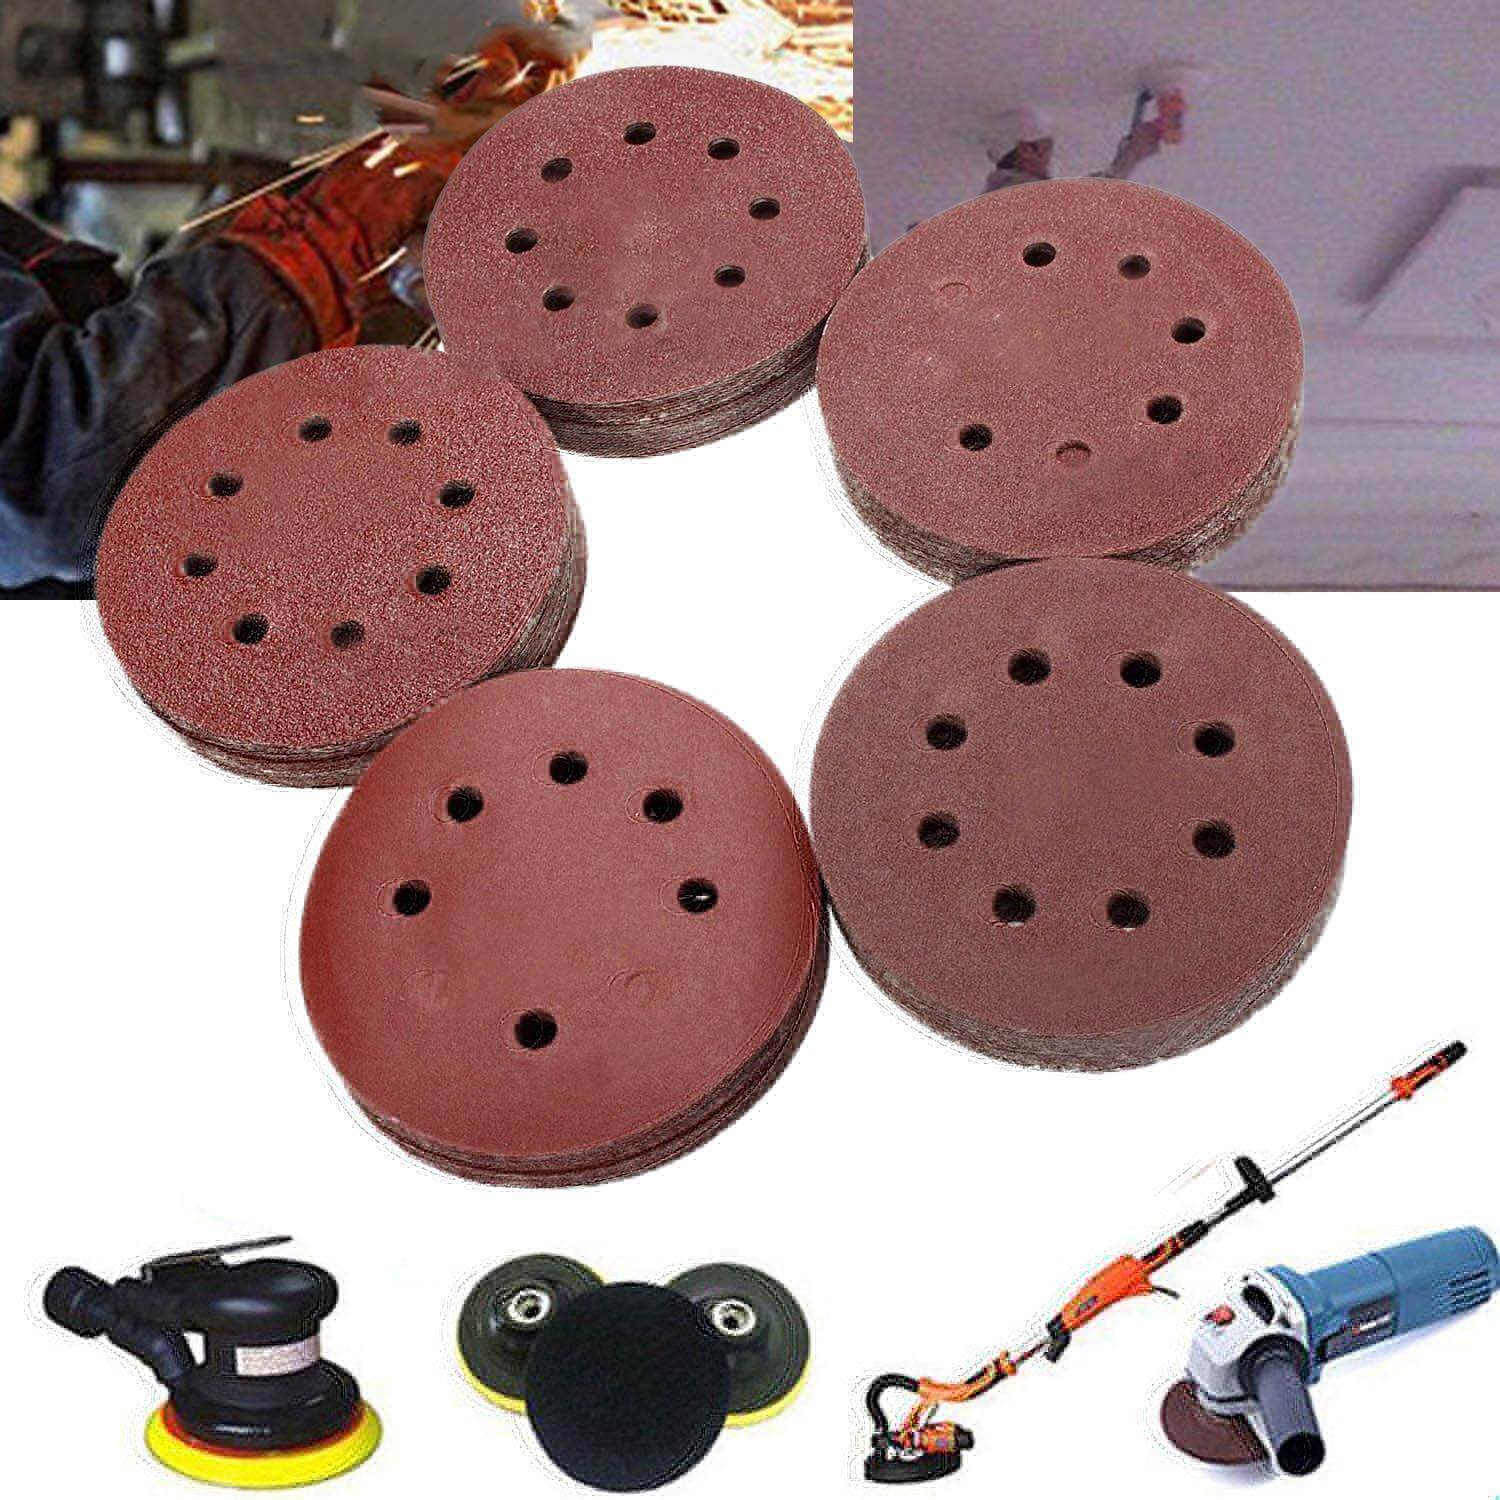 100 PCS Sanding Discs Pads Paper 60 80 100 120 240 Grits 8-Holes 125mm For Pneumatic Electric Manual Grinding Machines - intl